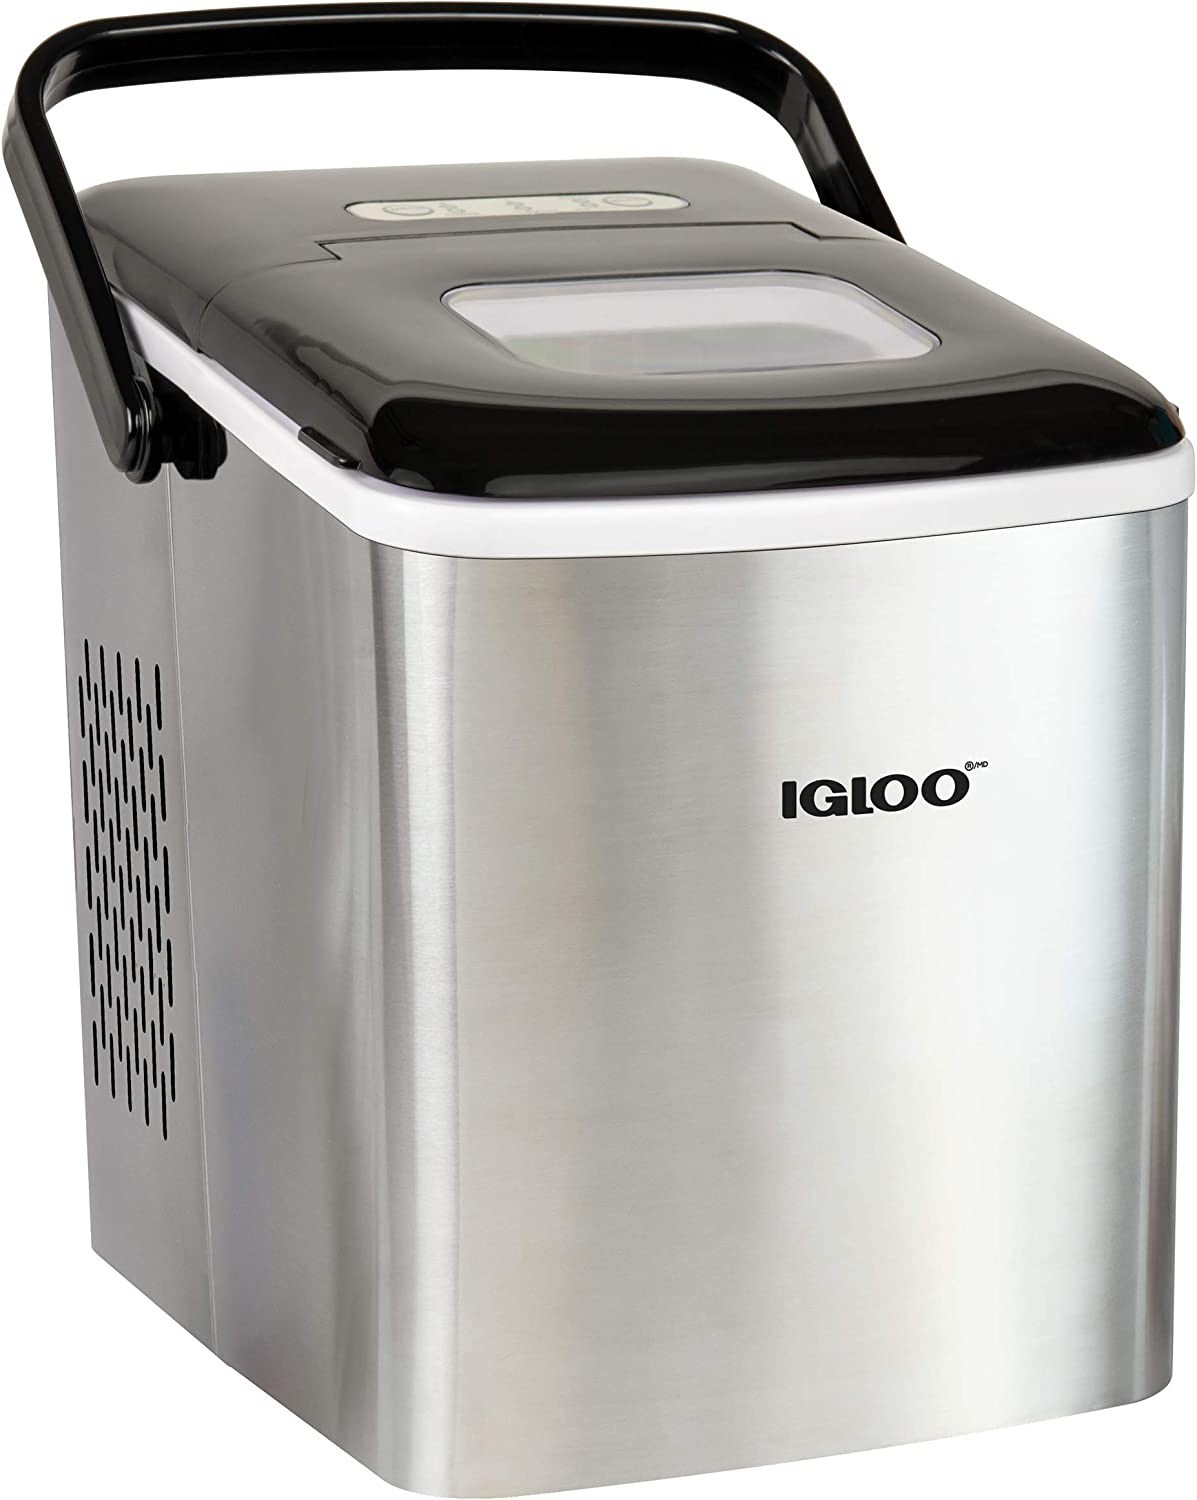 Igloo Automatic Self-Cleaning Portable Electric Countertop Ice Maker Machine With Handle